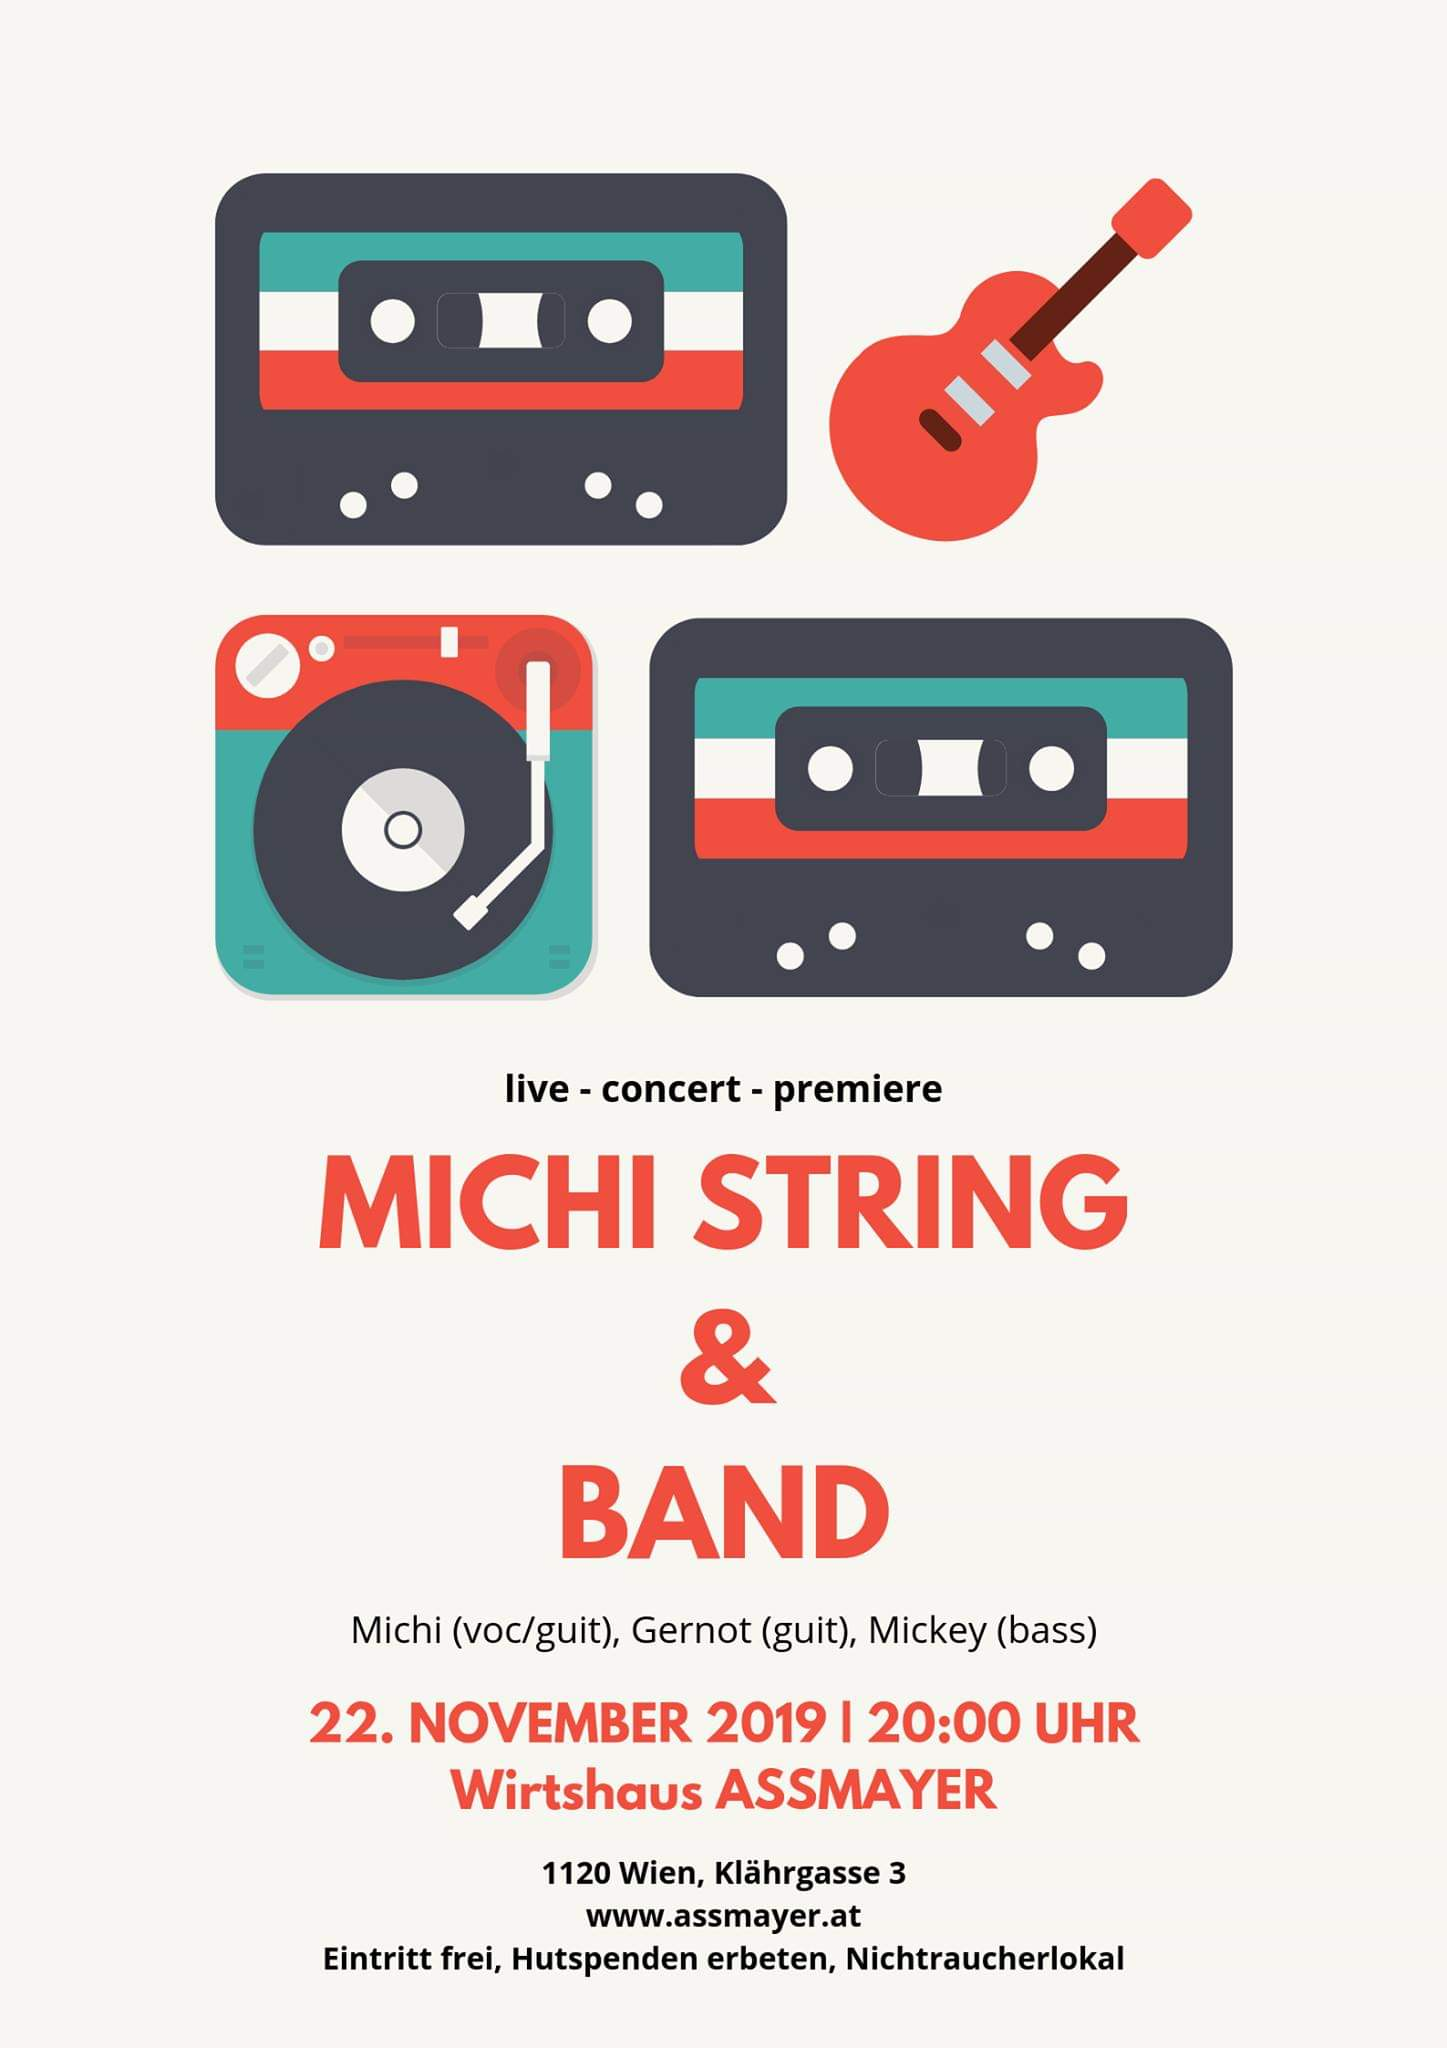 Michi String & Band